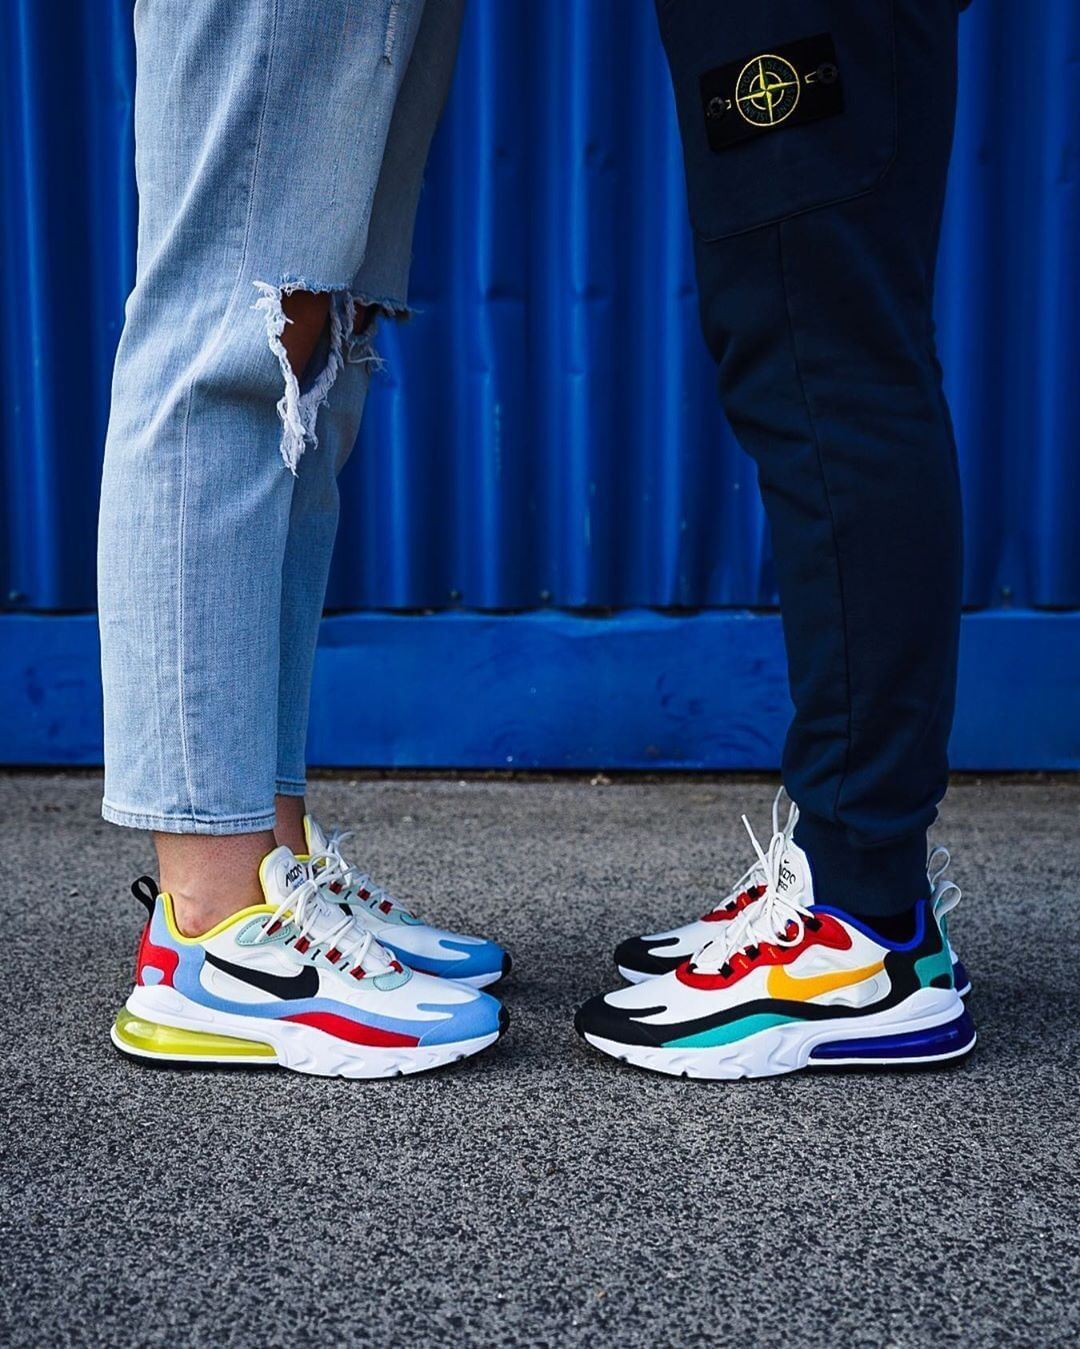 AO4971 270 Air 002 React bunt in in 2019Nike Max Nike pqVSMGUz